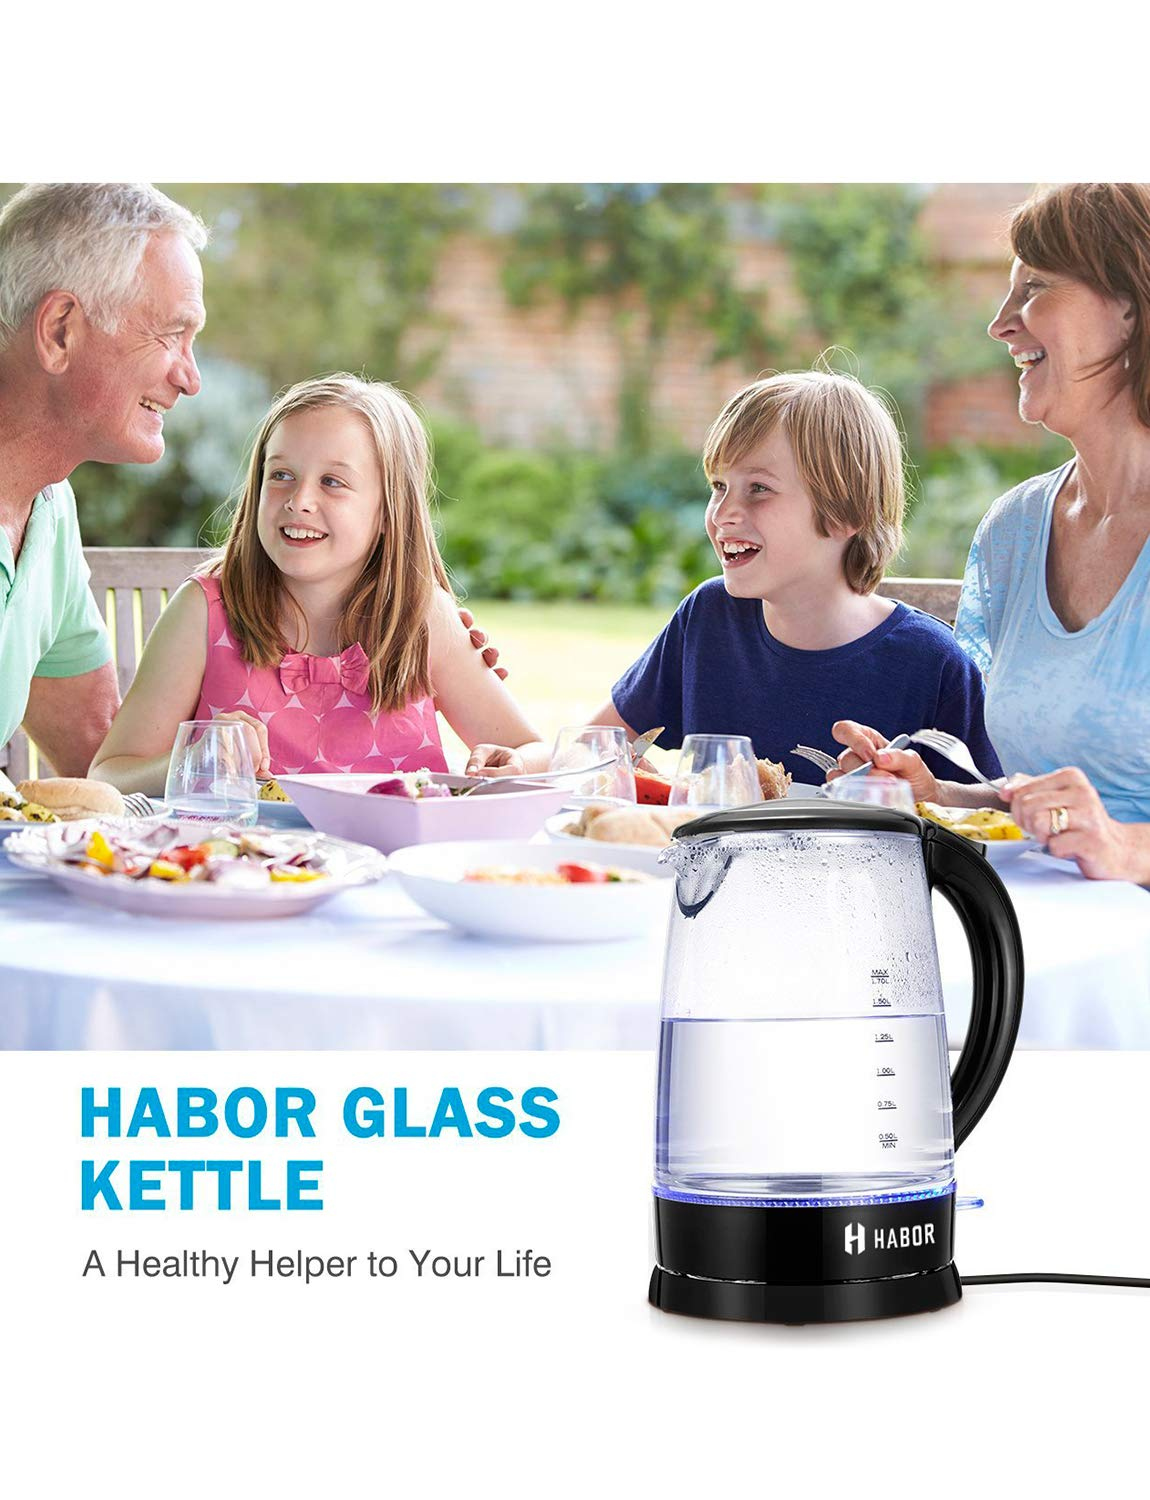 Habor Electric kettle, Water Boiler 1500W Fast Heating Tea Pot, 1.8 Quart (1.7 L) Blue LED Lights Bright Glass Body, Auto Shut-Off Boil-Dry Protection Stainless Steel Inner Lip by Habor (Image #8)